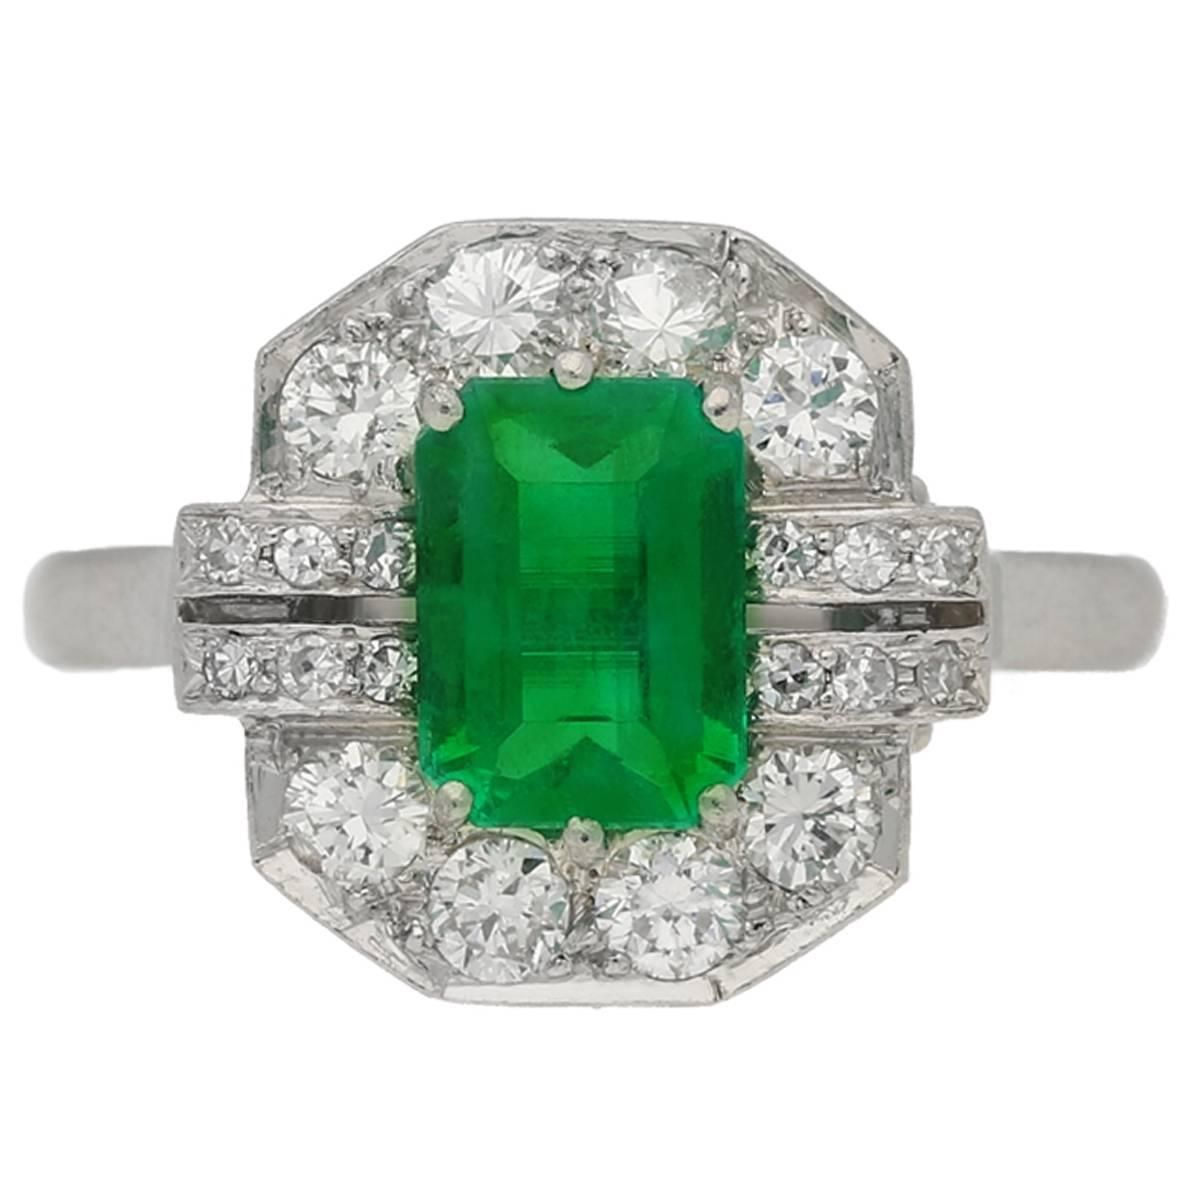 Art Deco emerald diamond Platinum Engagement ring. Set with an octagonal emerald-cut natural Colombian emerald with no colour enhancement in an open back claw setting with an approximate weight of 1.38 carats, encircled by eight round old cut diamonds in open back grain settings and flanked by two rows of round single cut diamonds, 1935